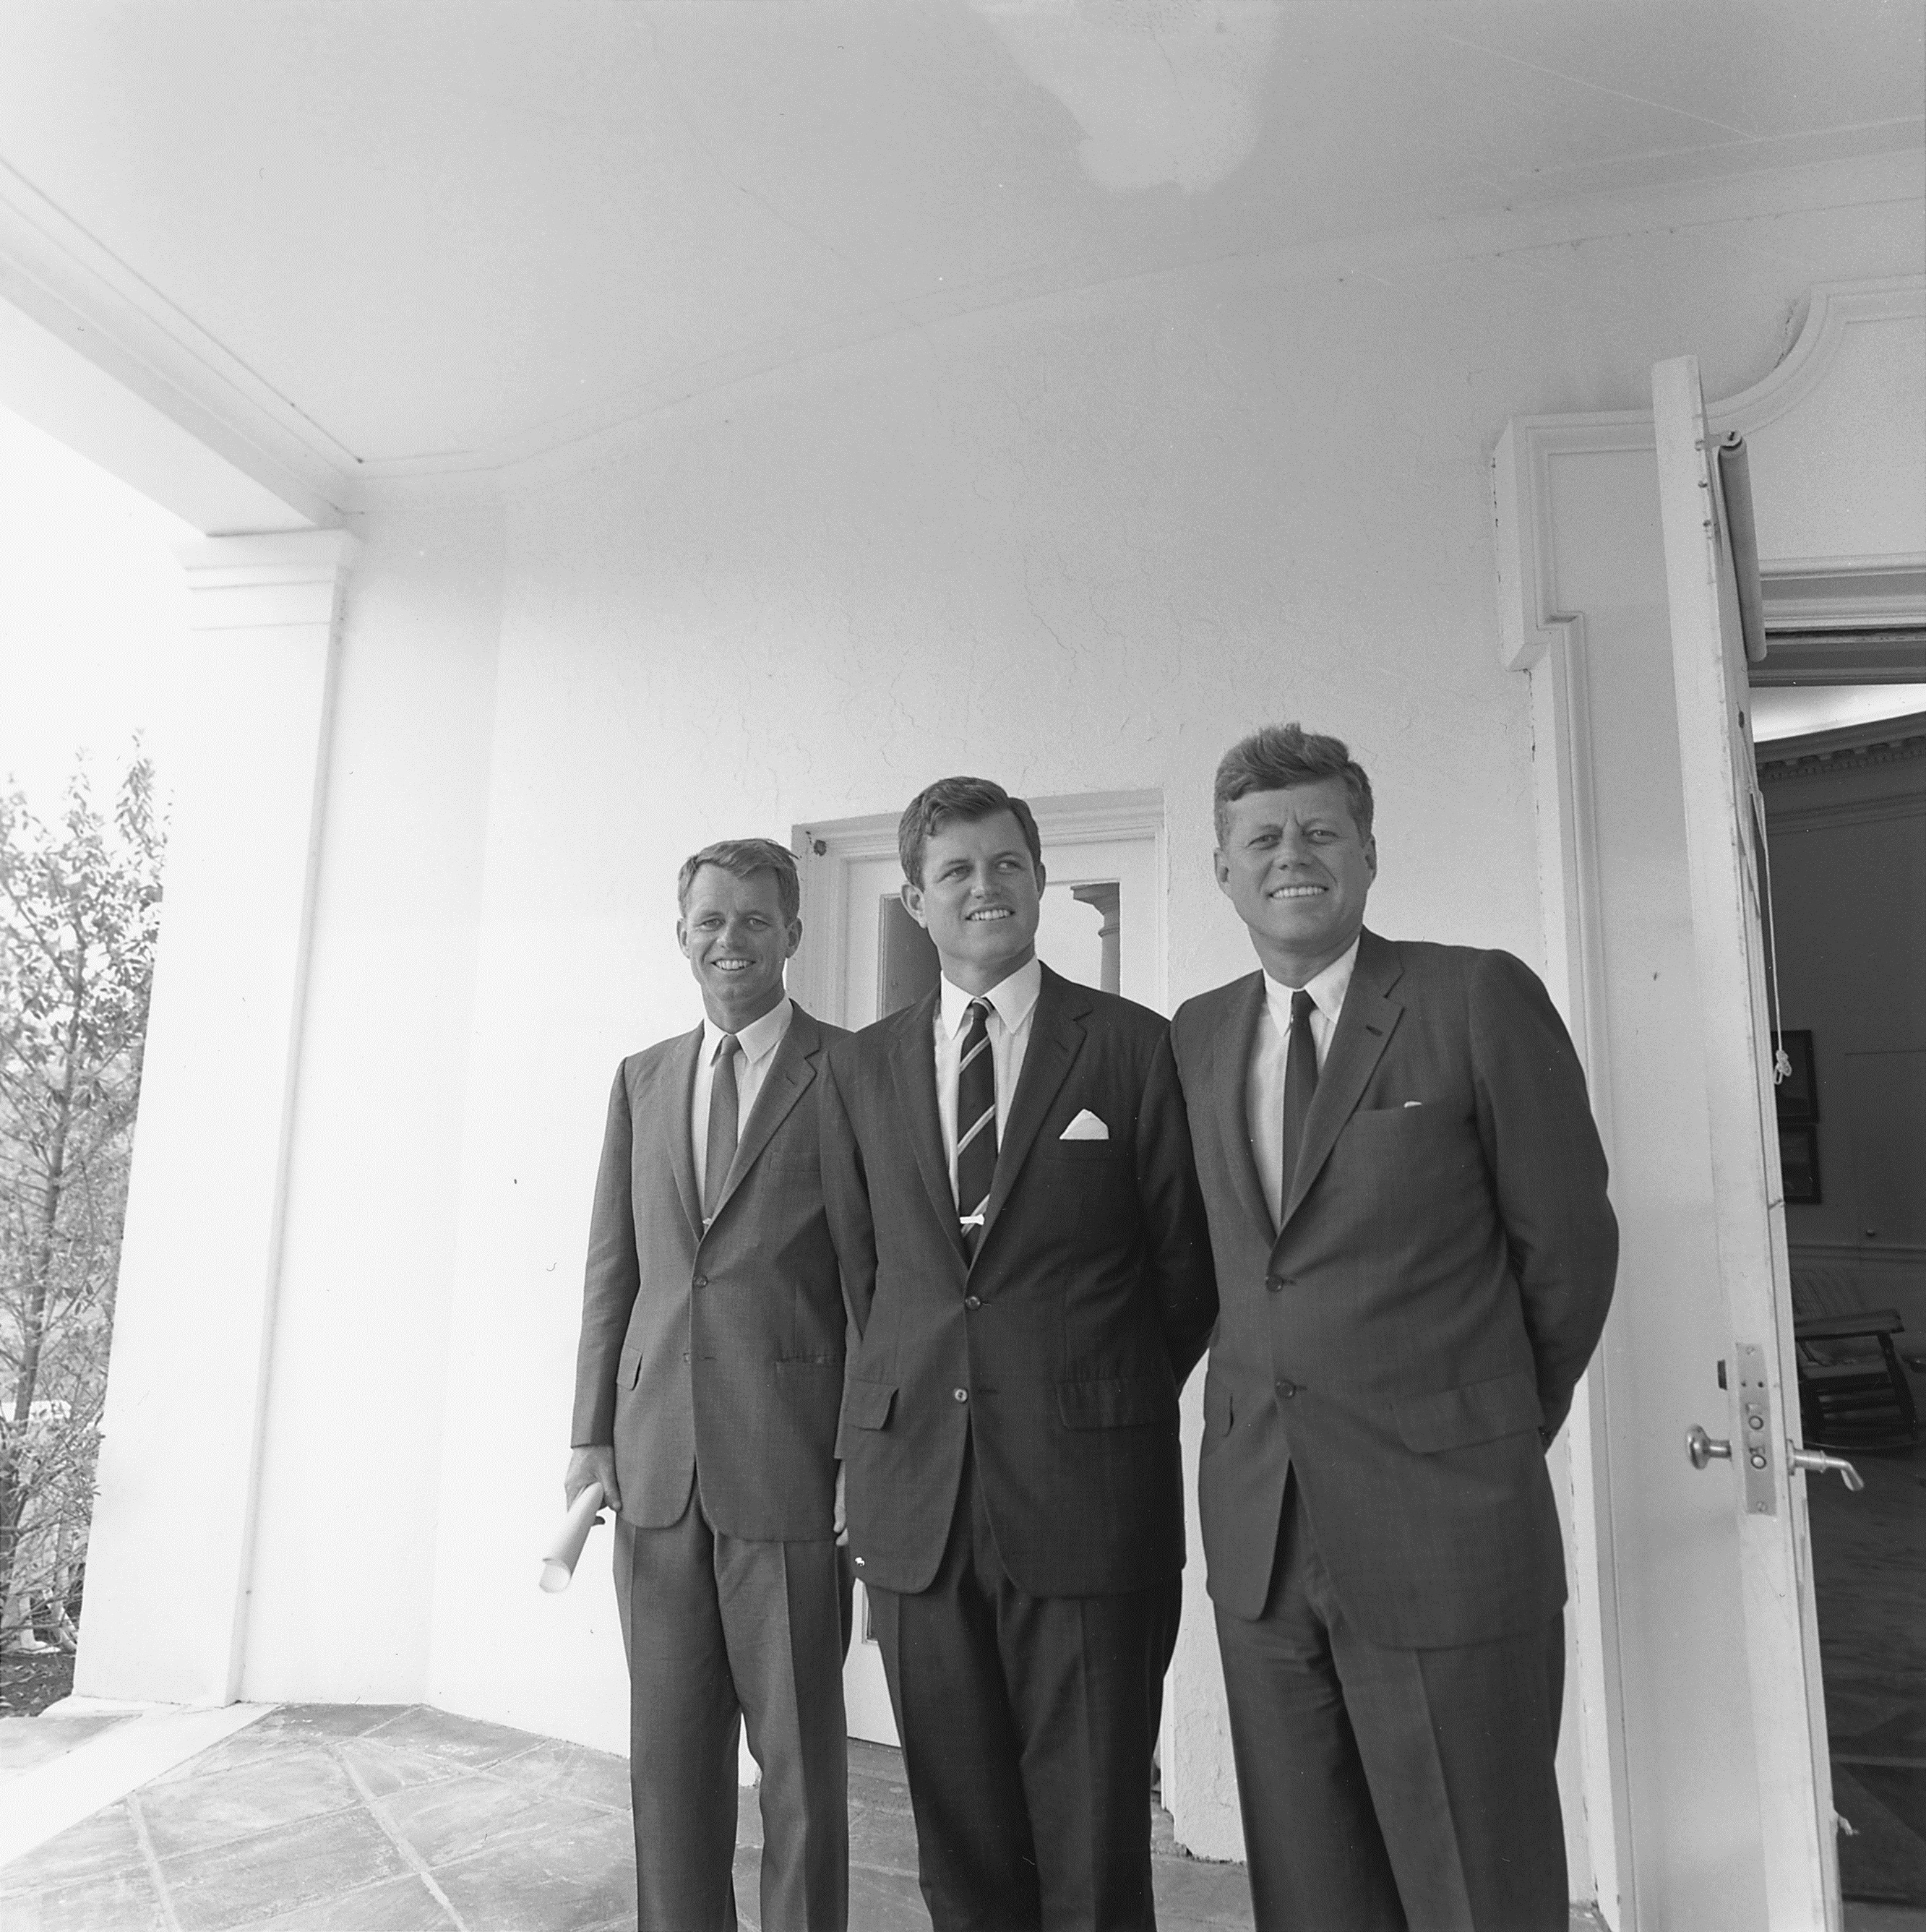 Robert F. Kennedy, Ted Kennedy and John F. Kennedy